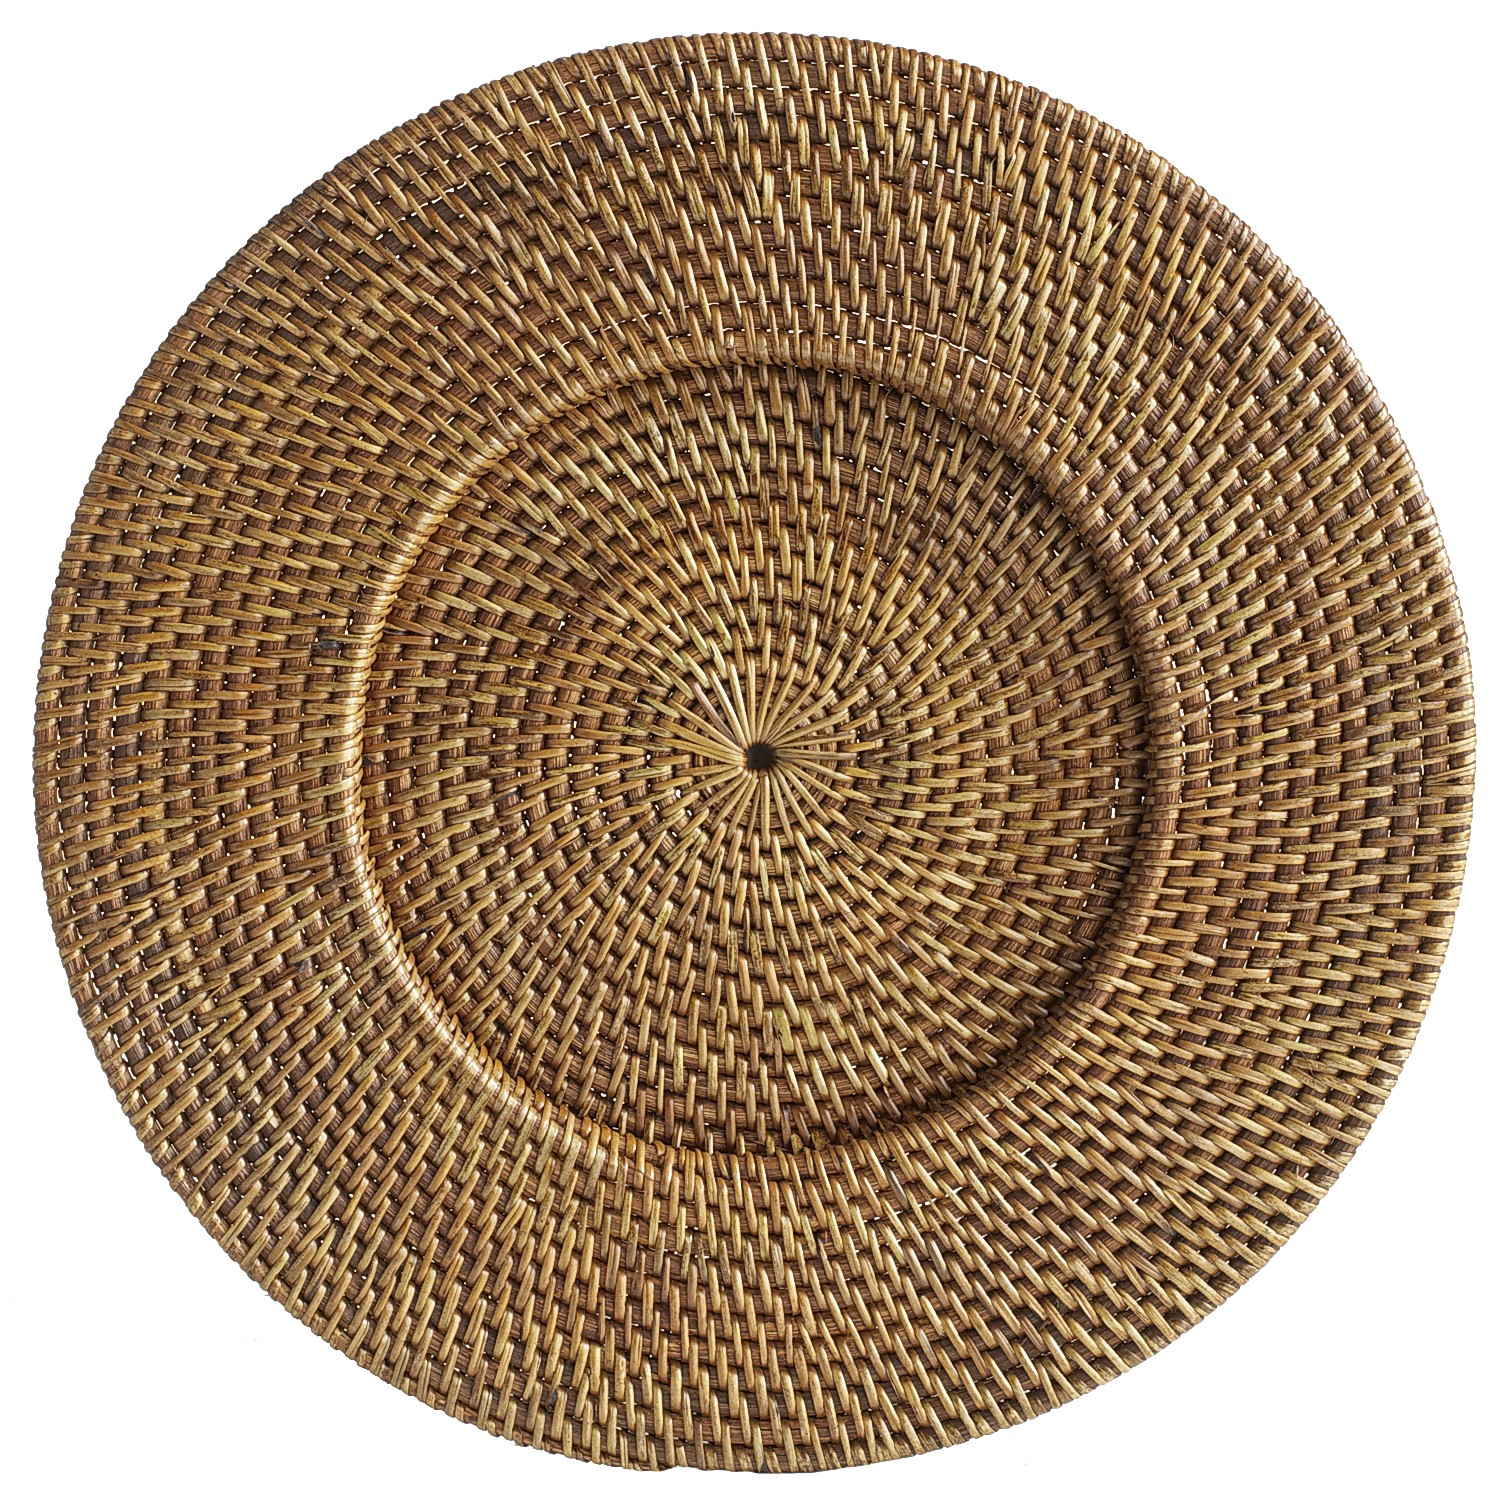 Brown Rattan Round Charger Plate